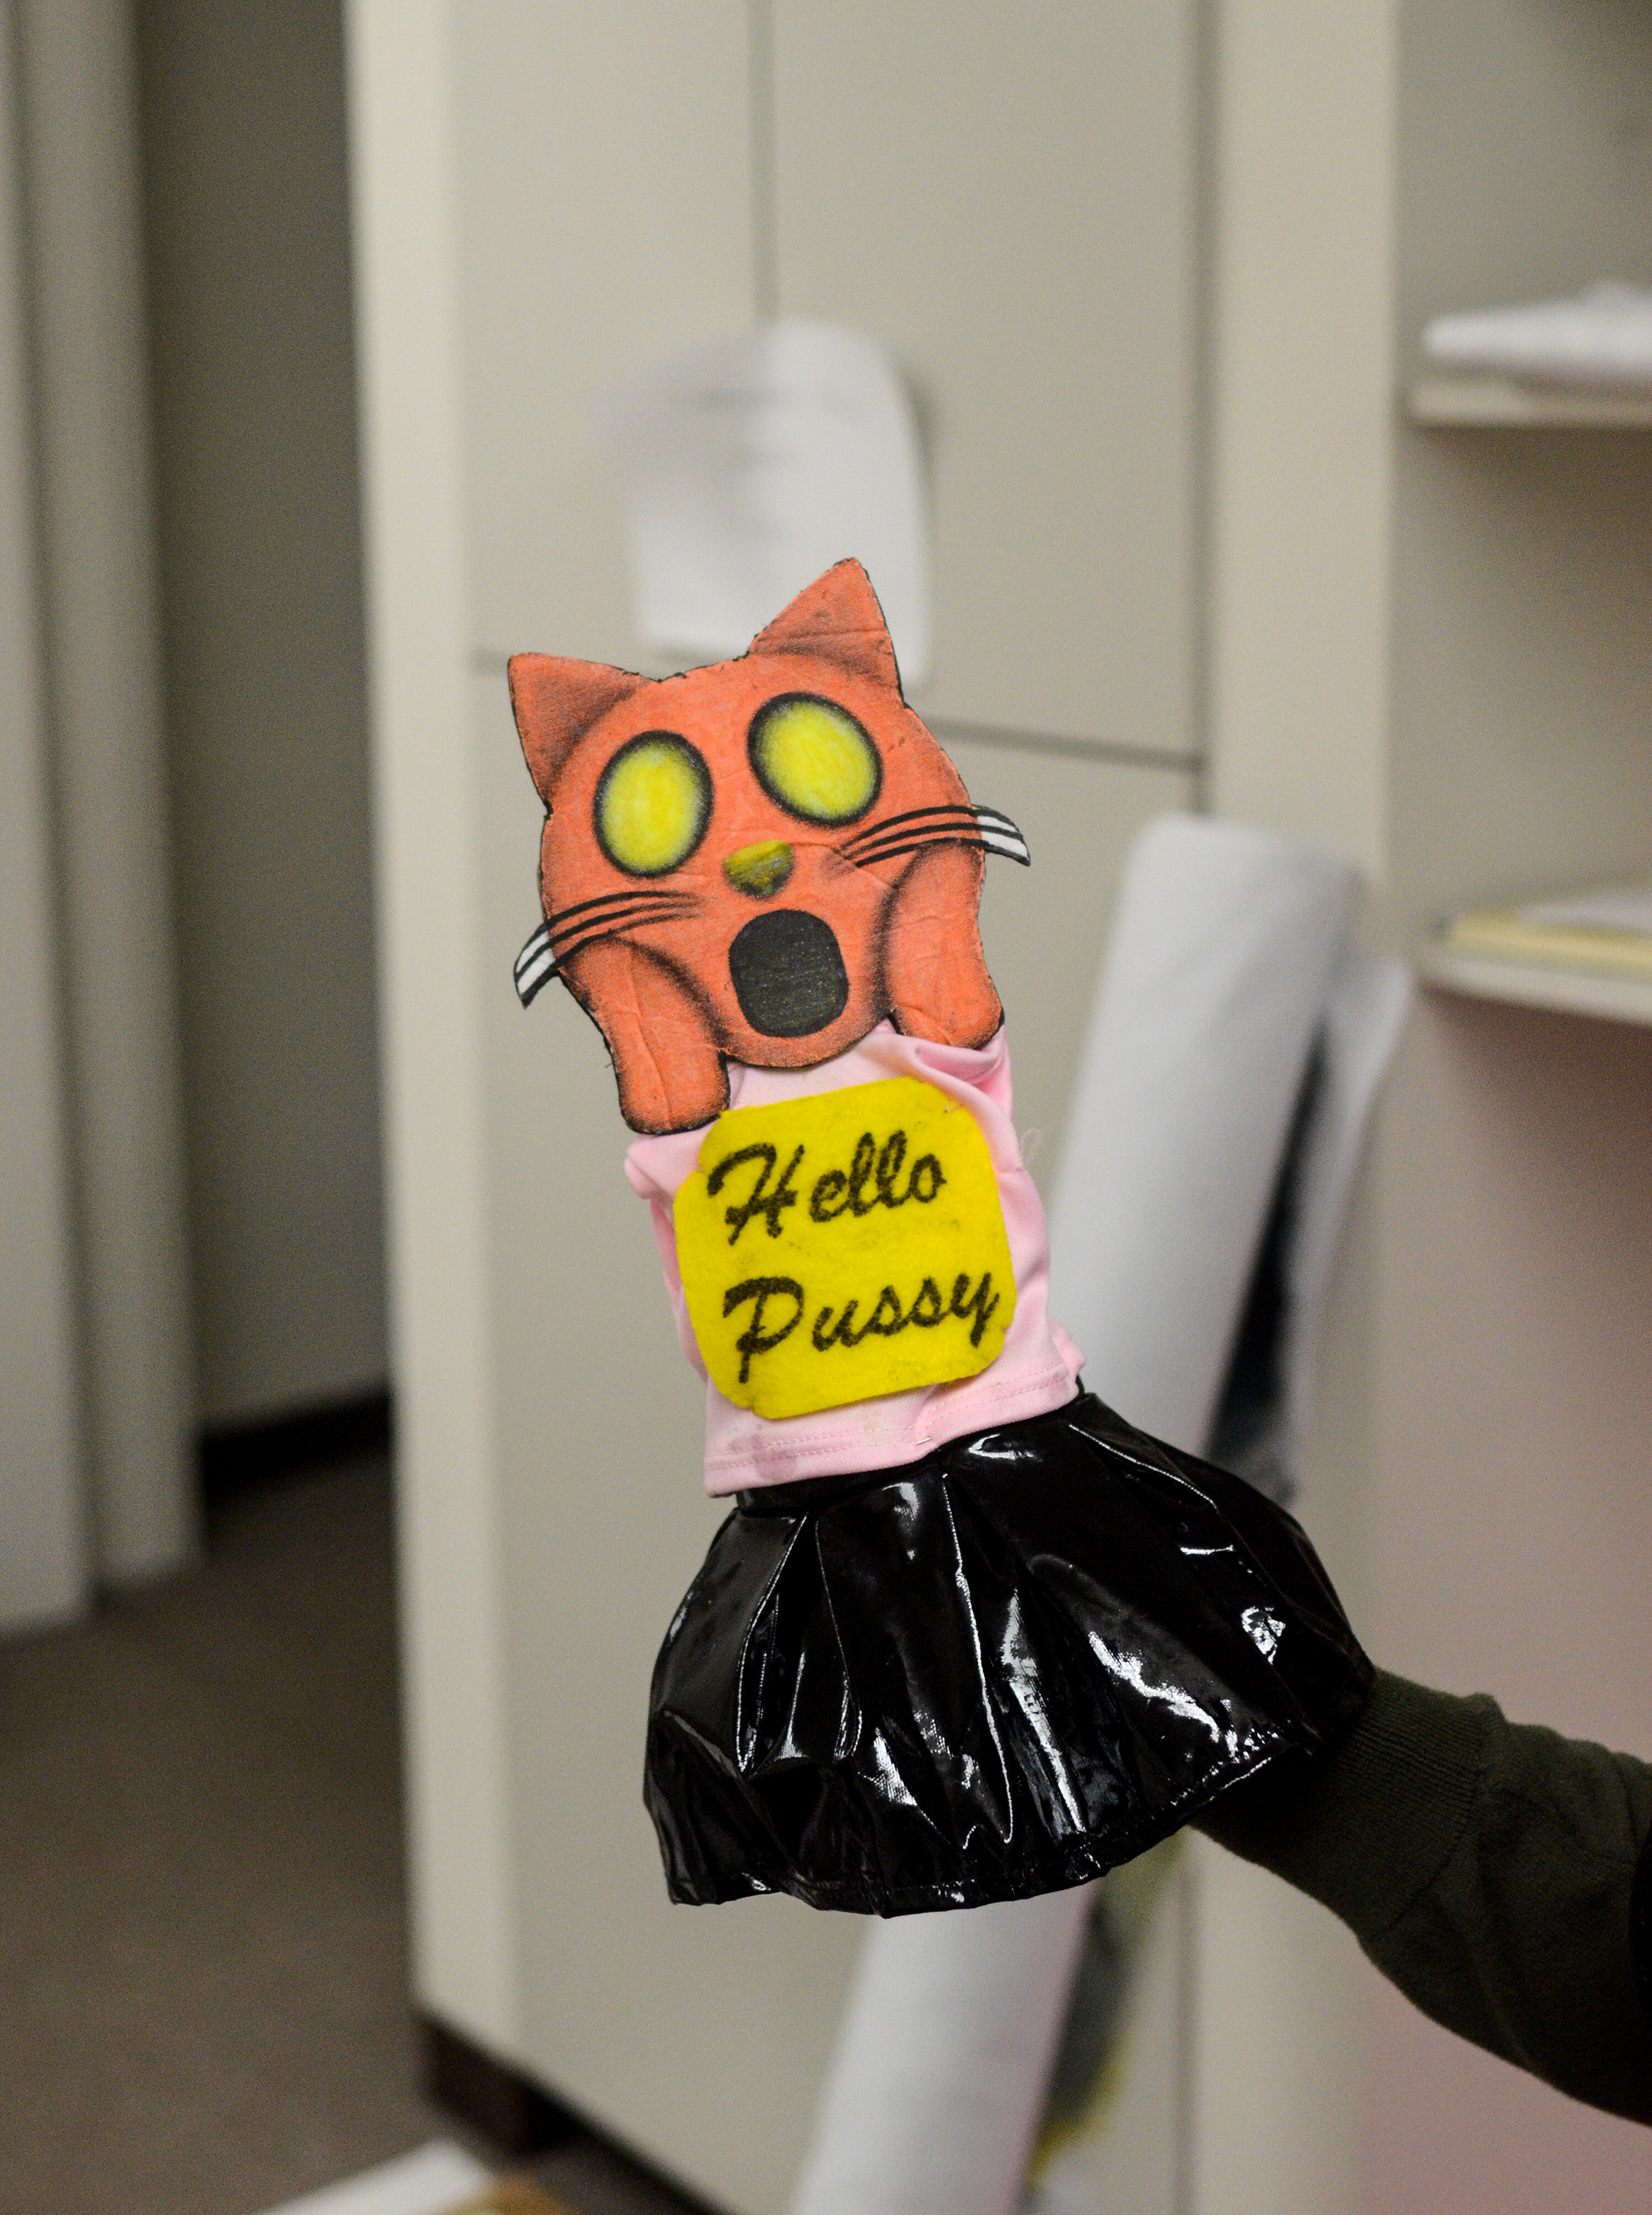 """Image: A hand puppet has the head of an orange emoji cat making a shocked face that alludes to """"The Scream"""" by Edvard Munch. It wears a pink and black outfit with a yellow sign that says """"Hello Pussy."""" Image by William Camargo."""